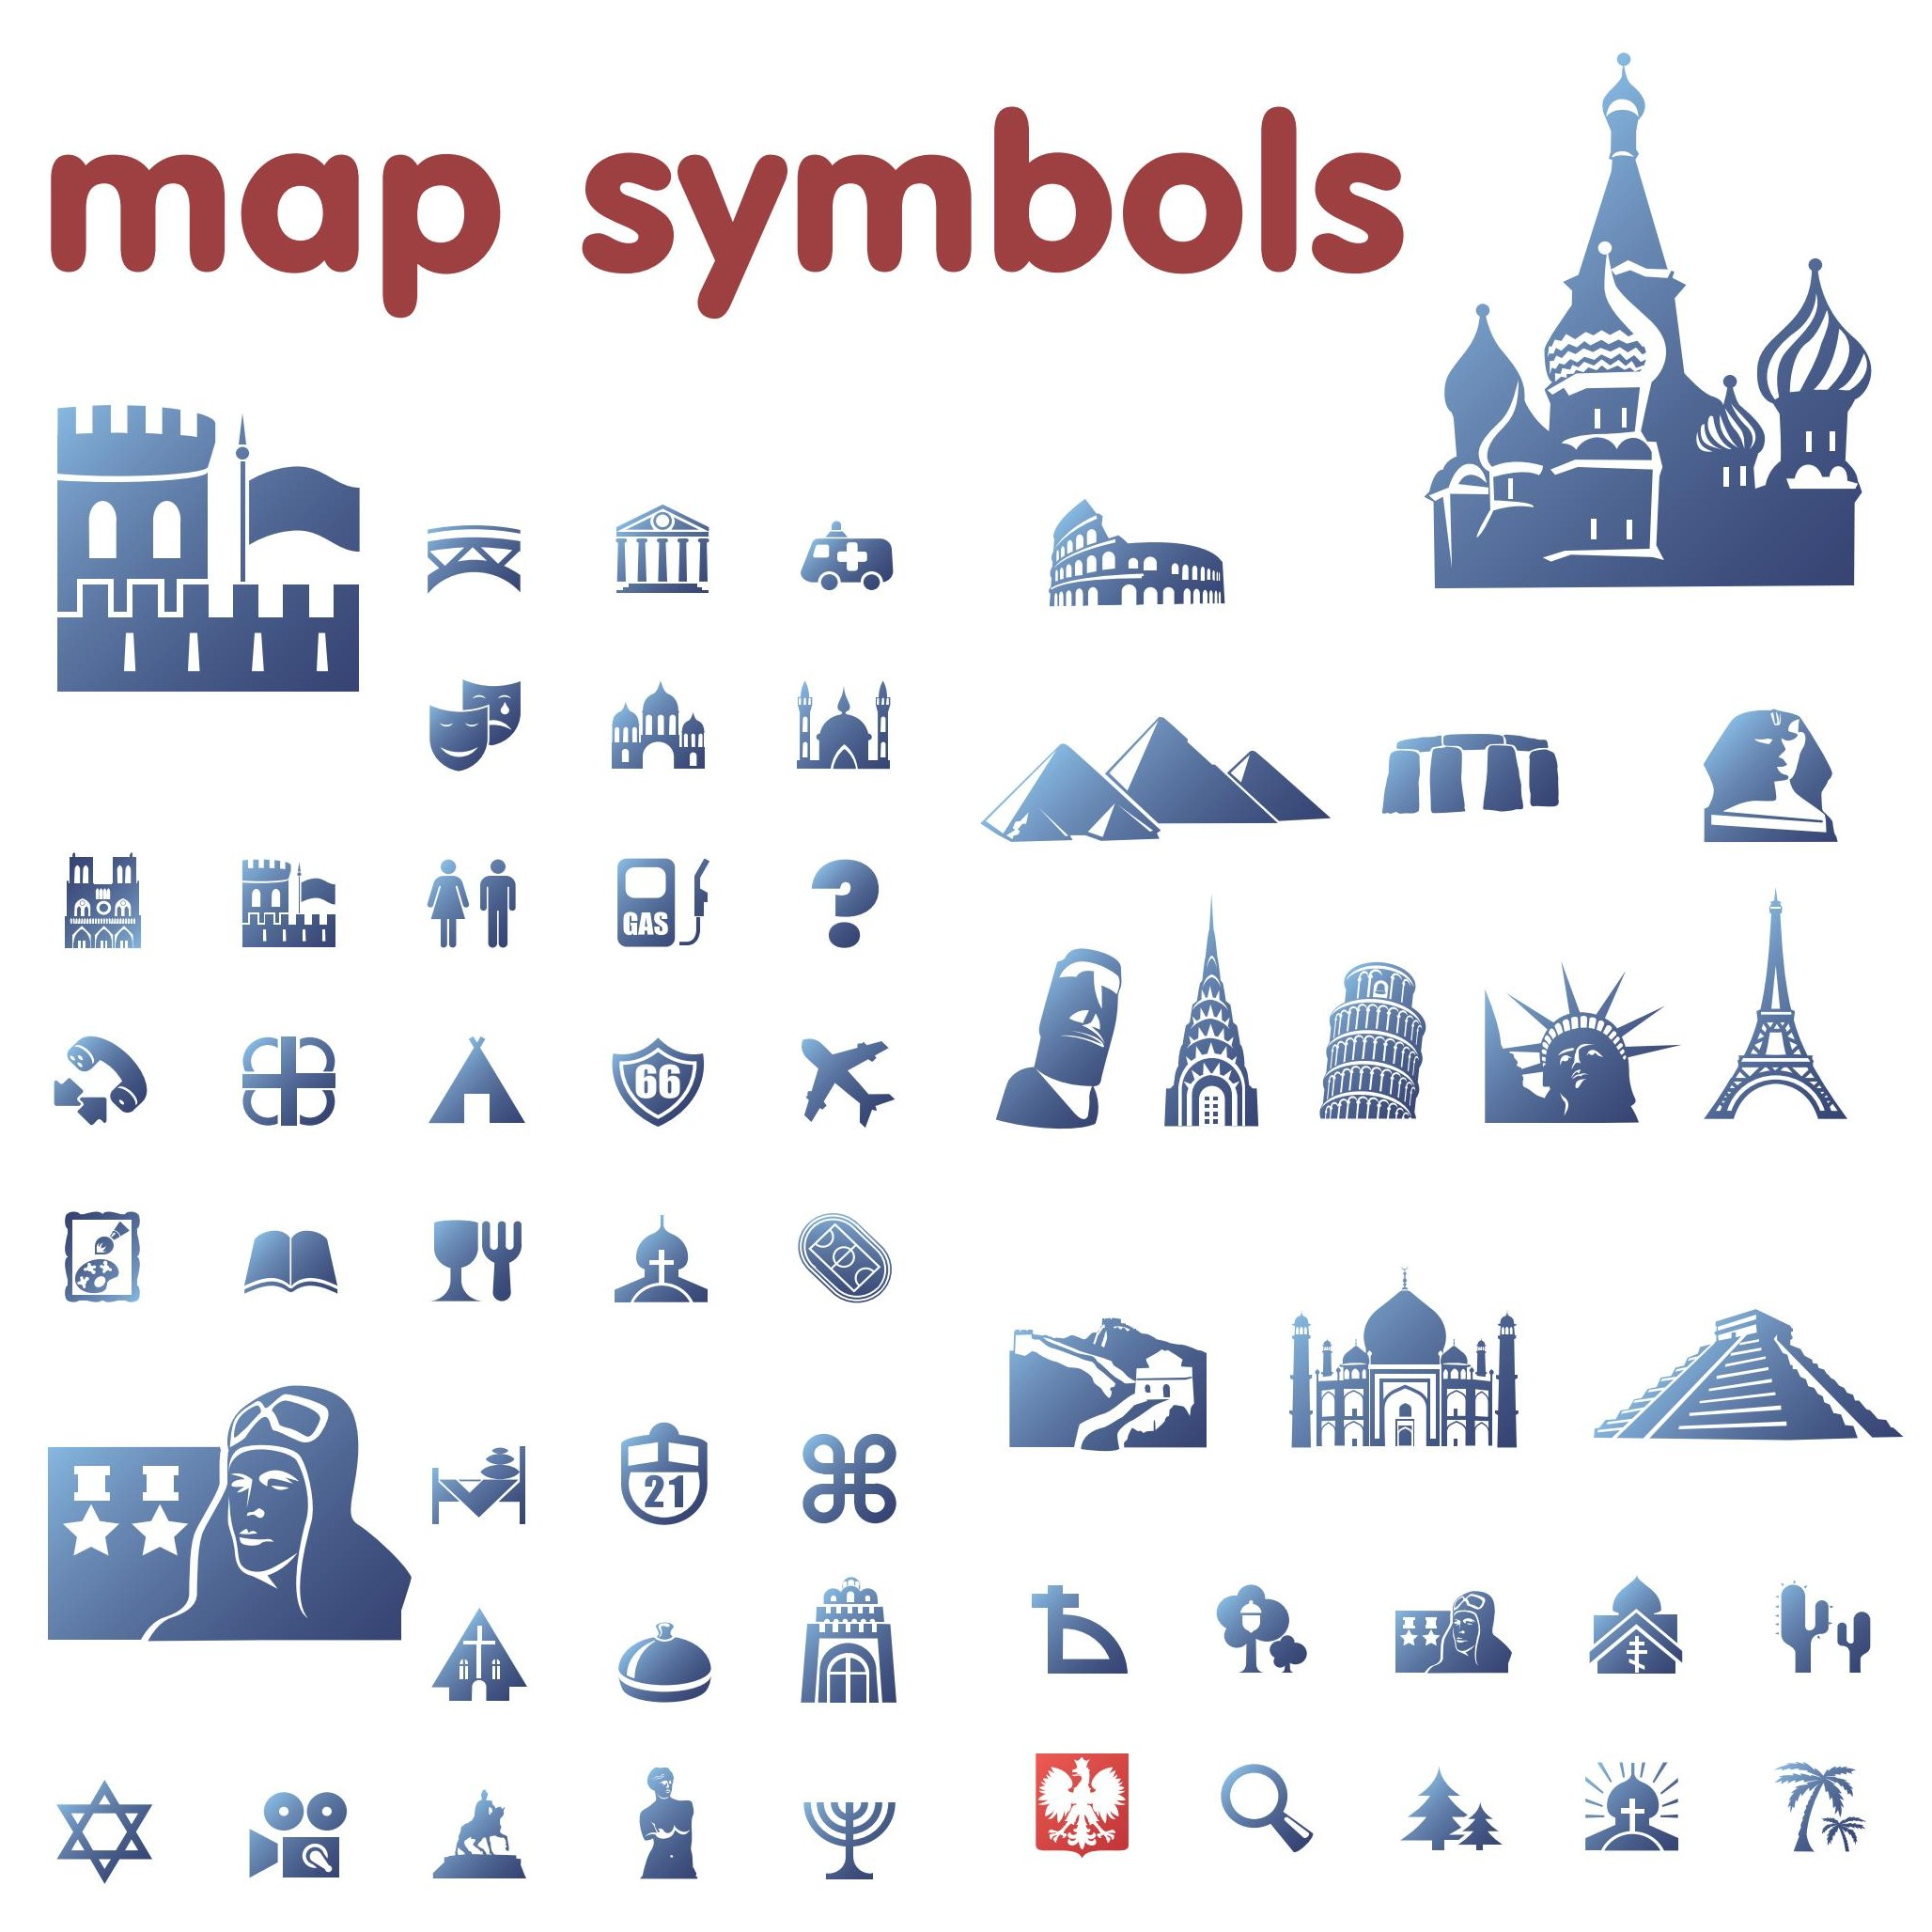 Clipart of a symbol of a door in a map clip art free Map symbol clipart - ClipartFest clip art free